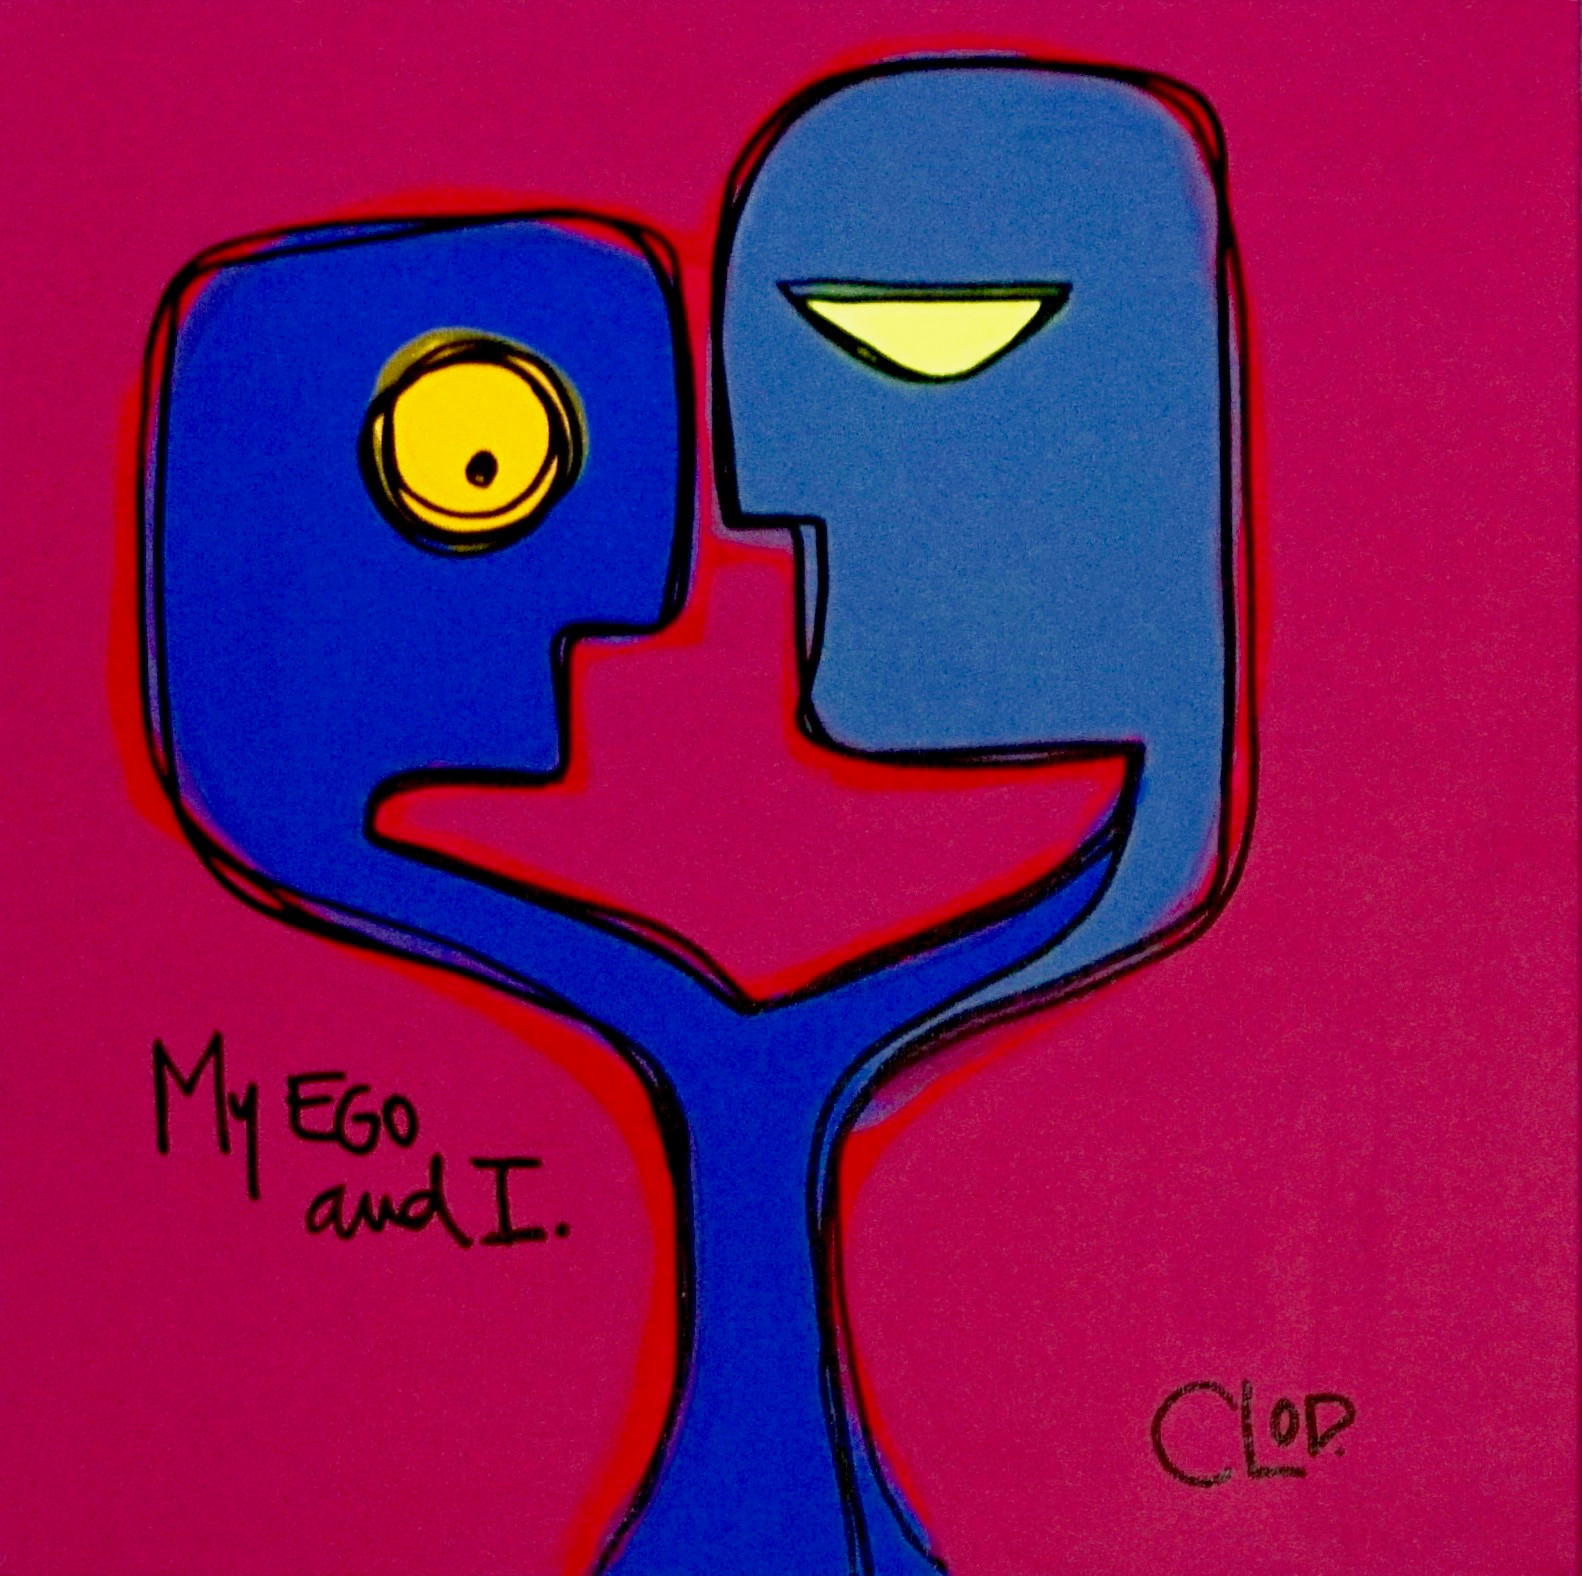 MY EGO AND I